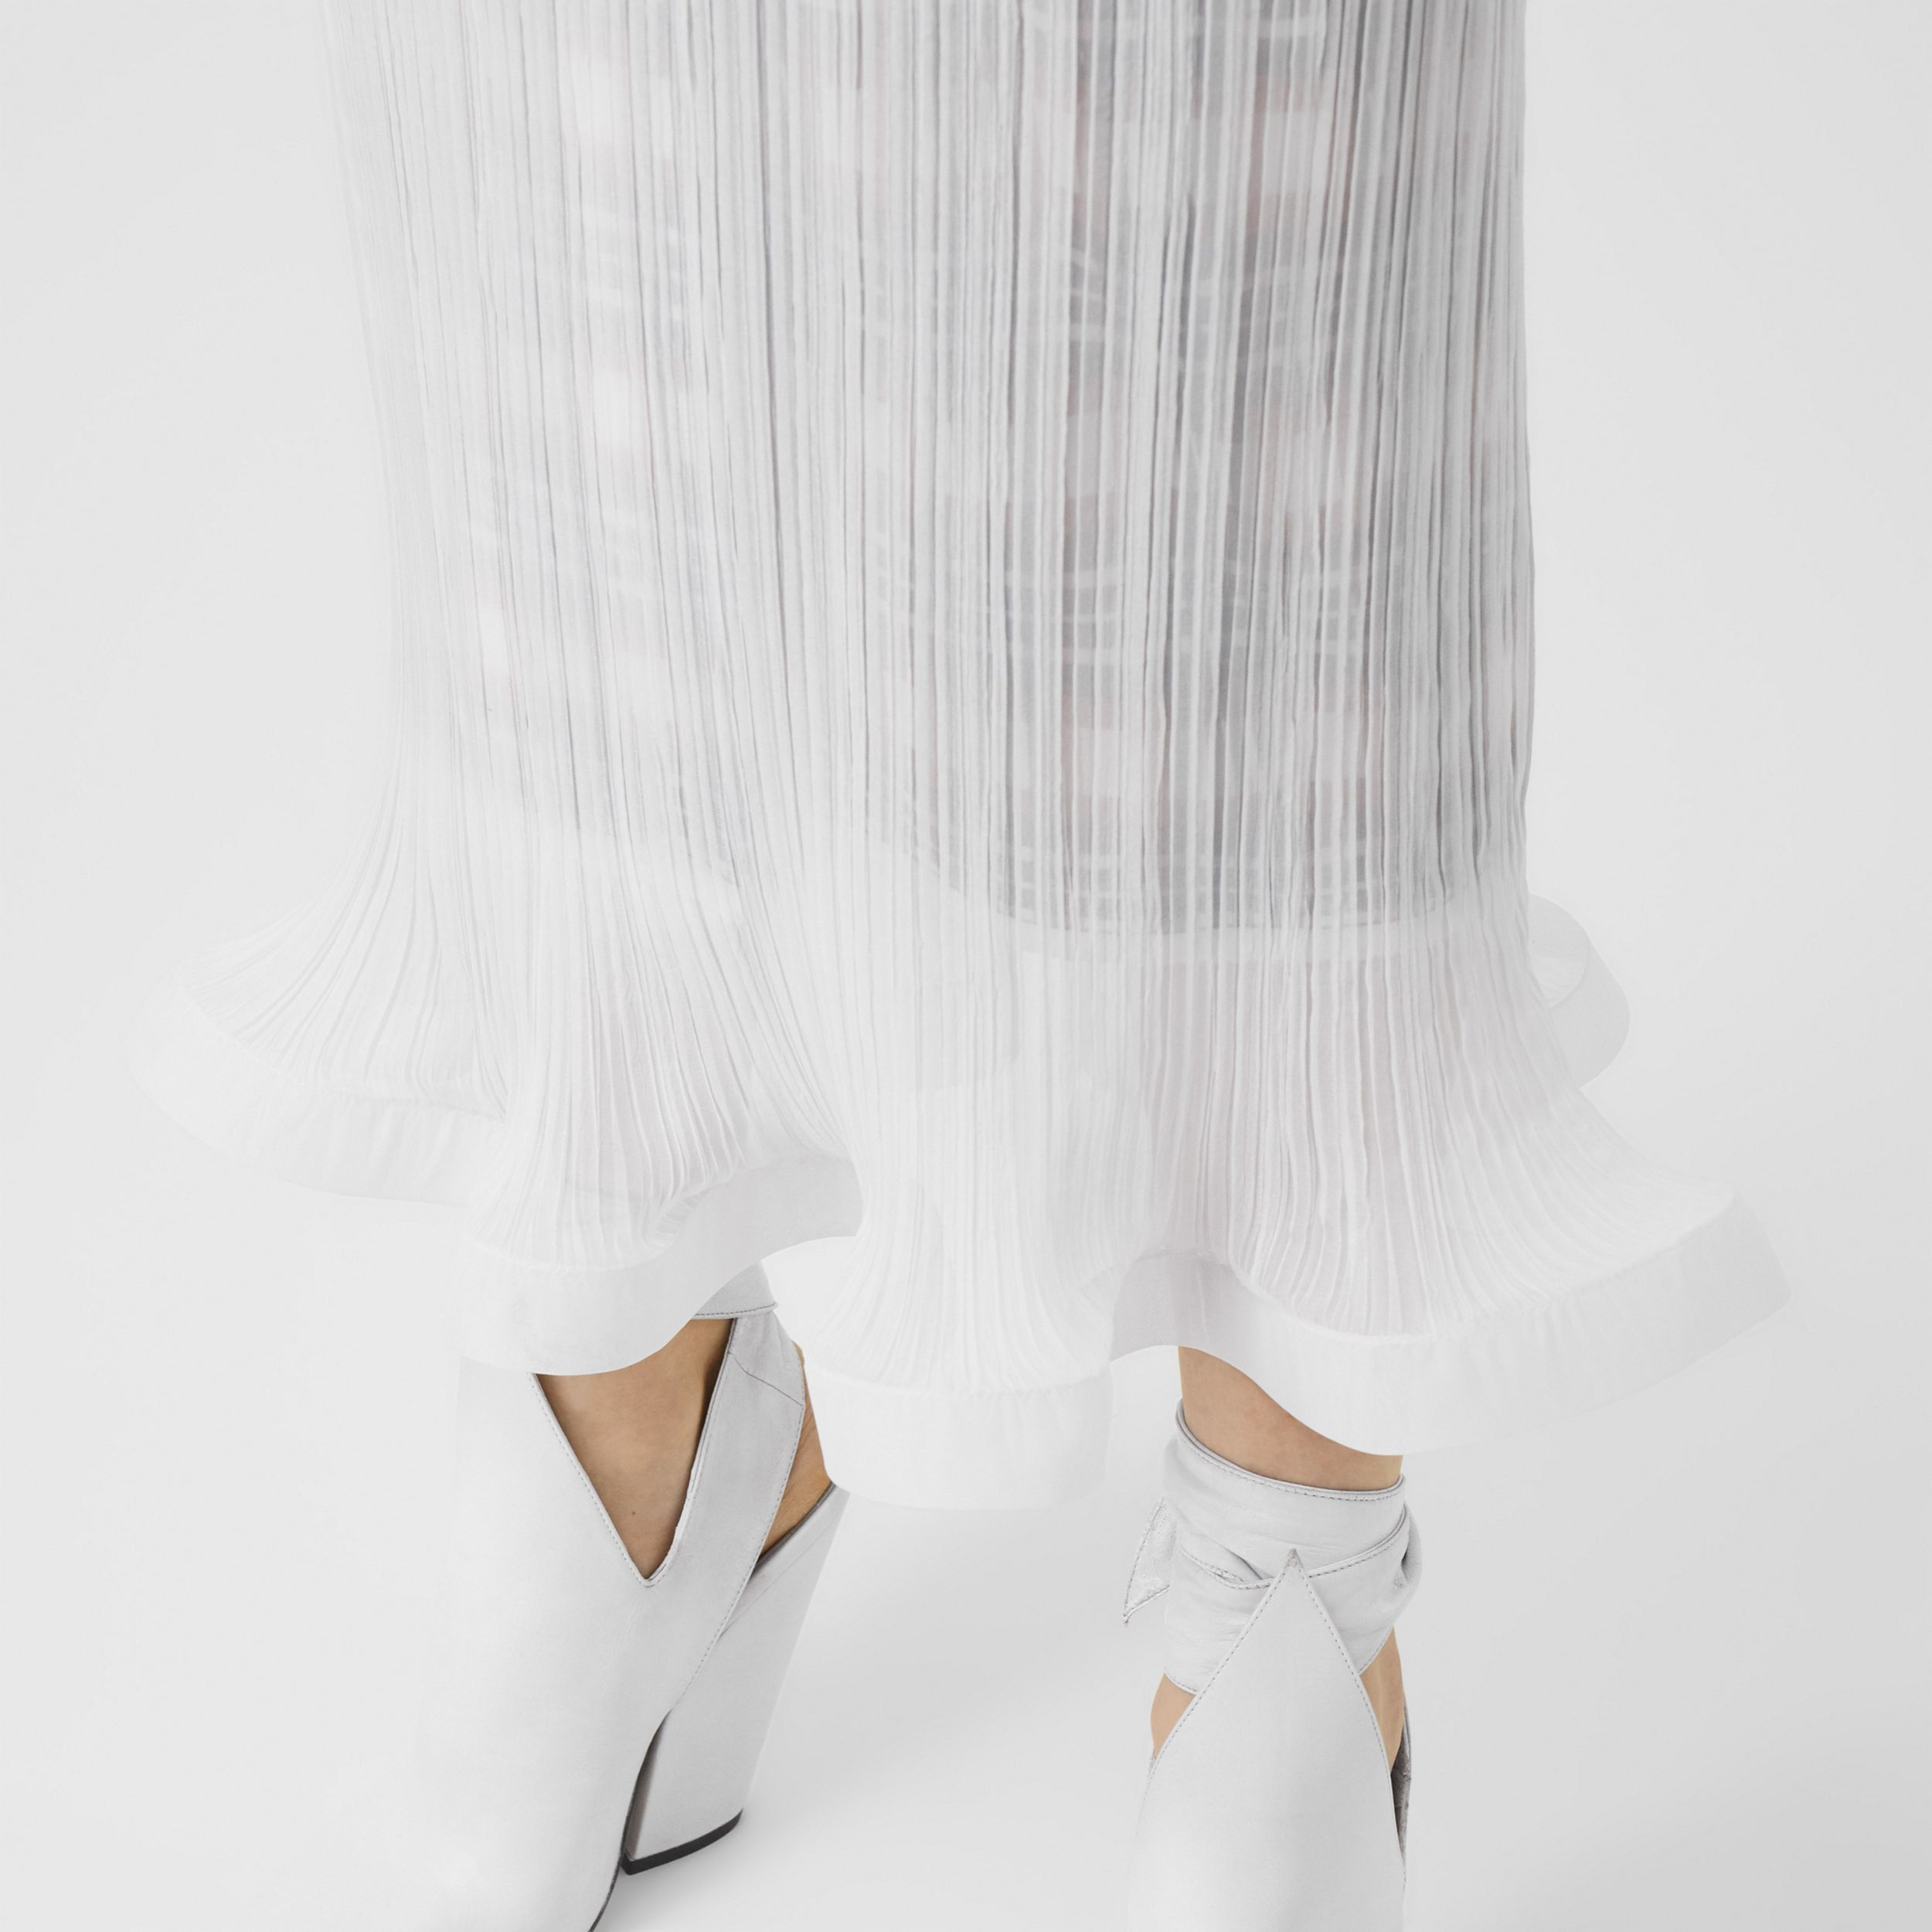 Ruffle Detail Chiffon Plissé Skirt in Optic White - Women | Burberry Singapore - 4